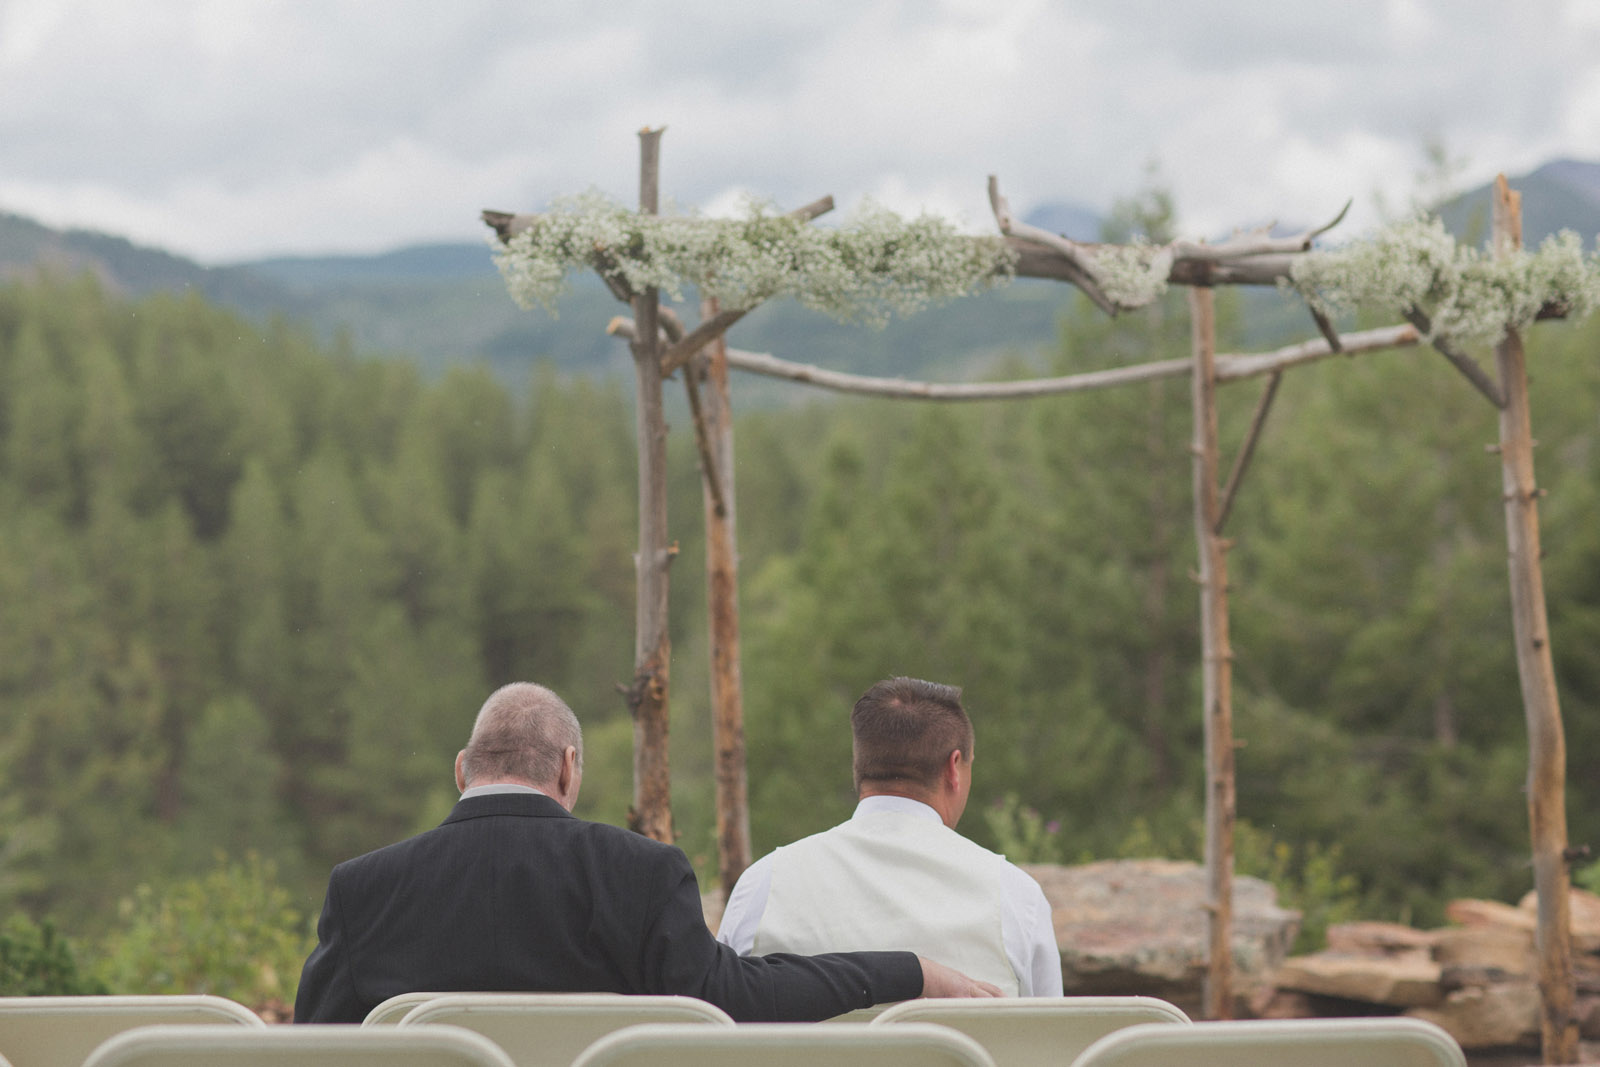 100-wedding-ideas-ideas-wedding-forest-mason-jars-backdrop-colorado-mancos-ceremony